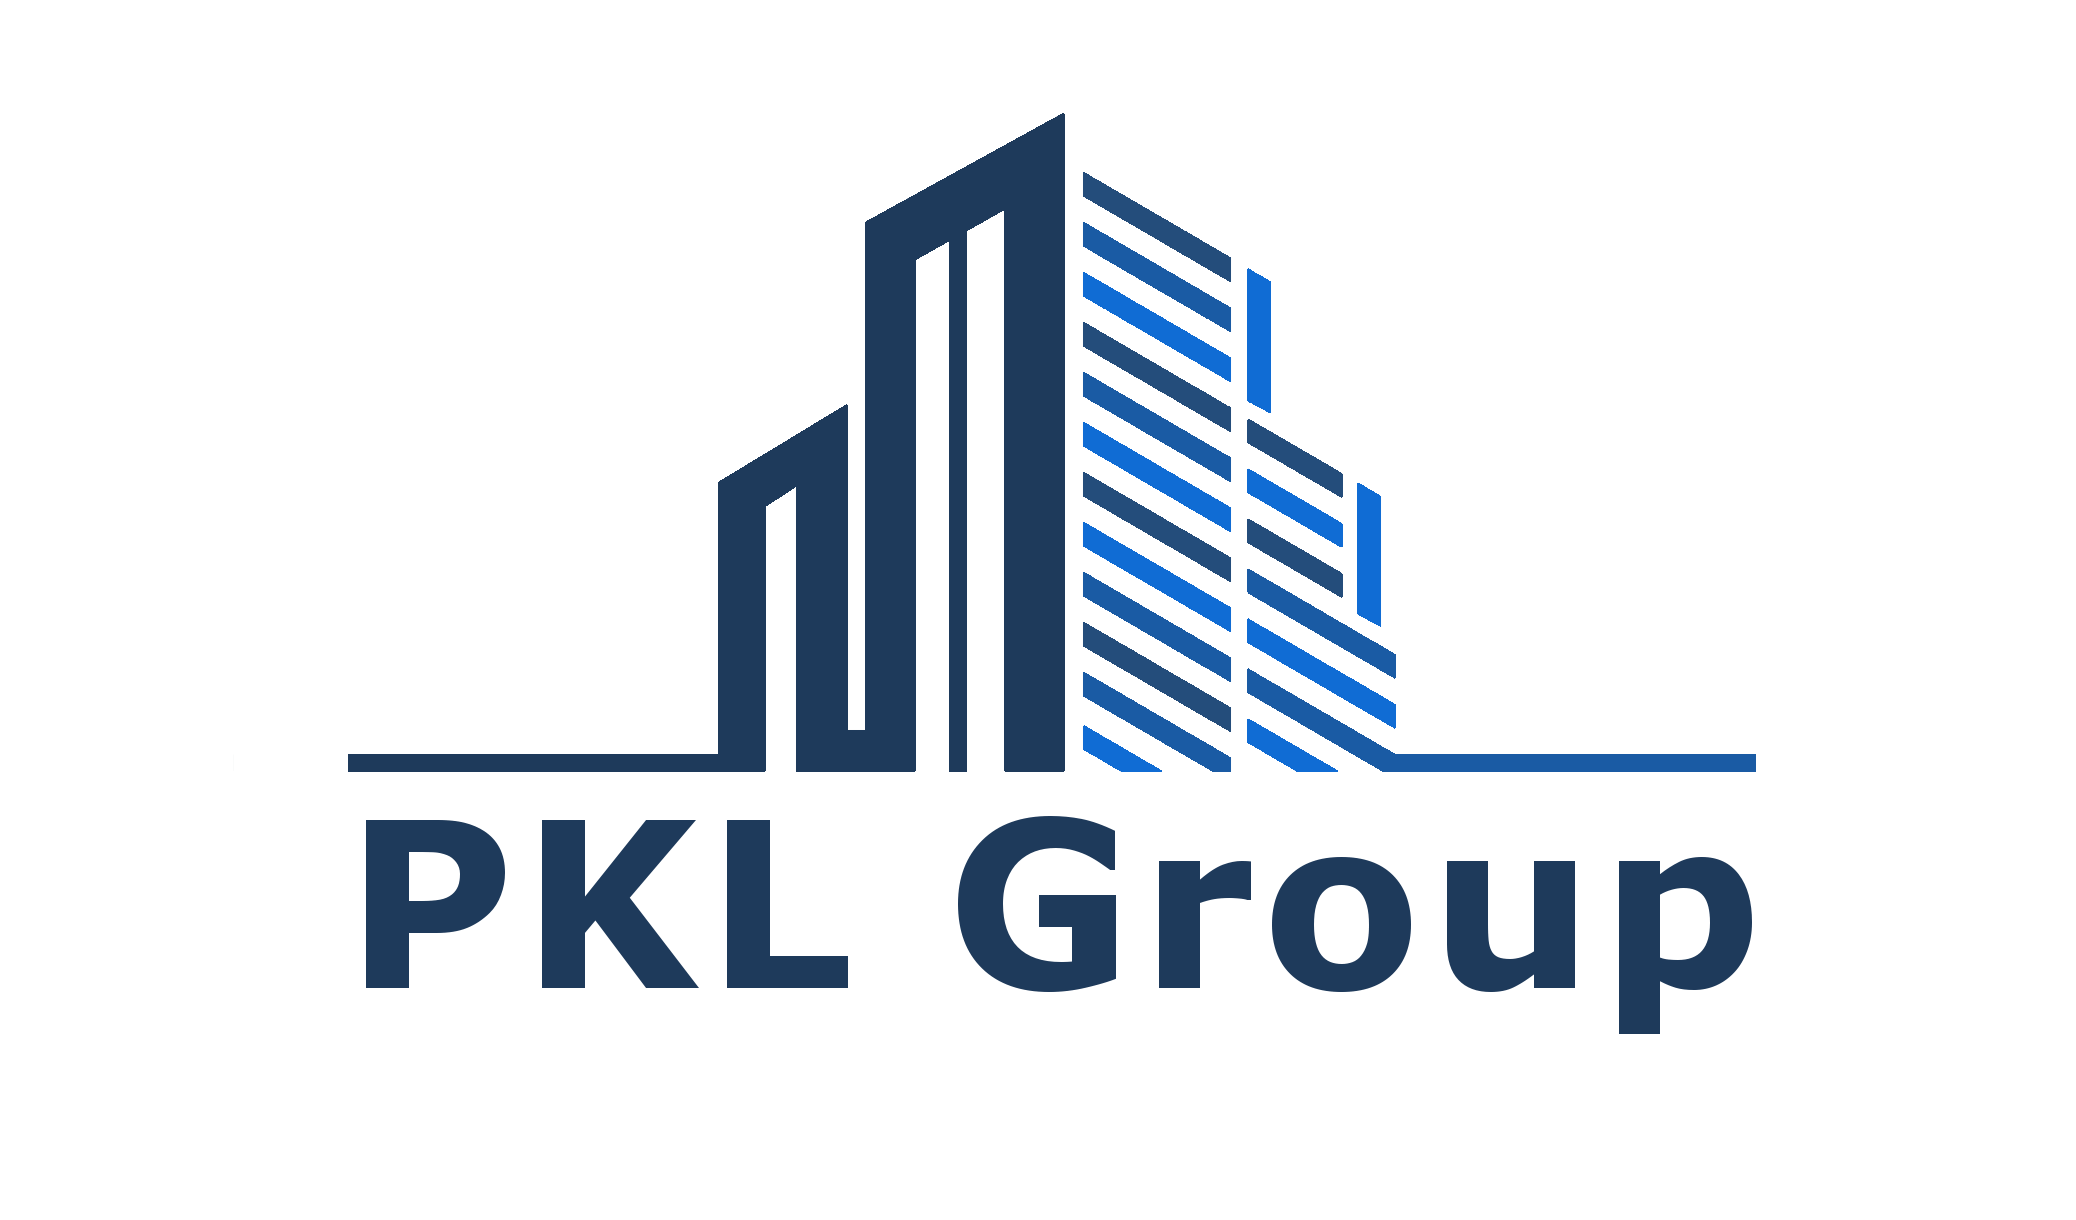 PKL Group